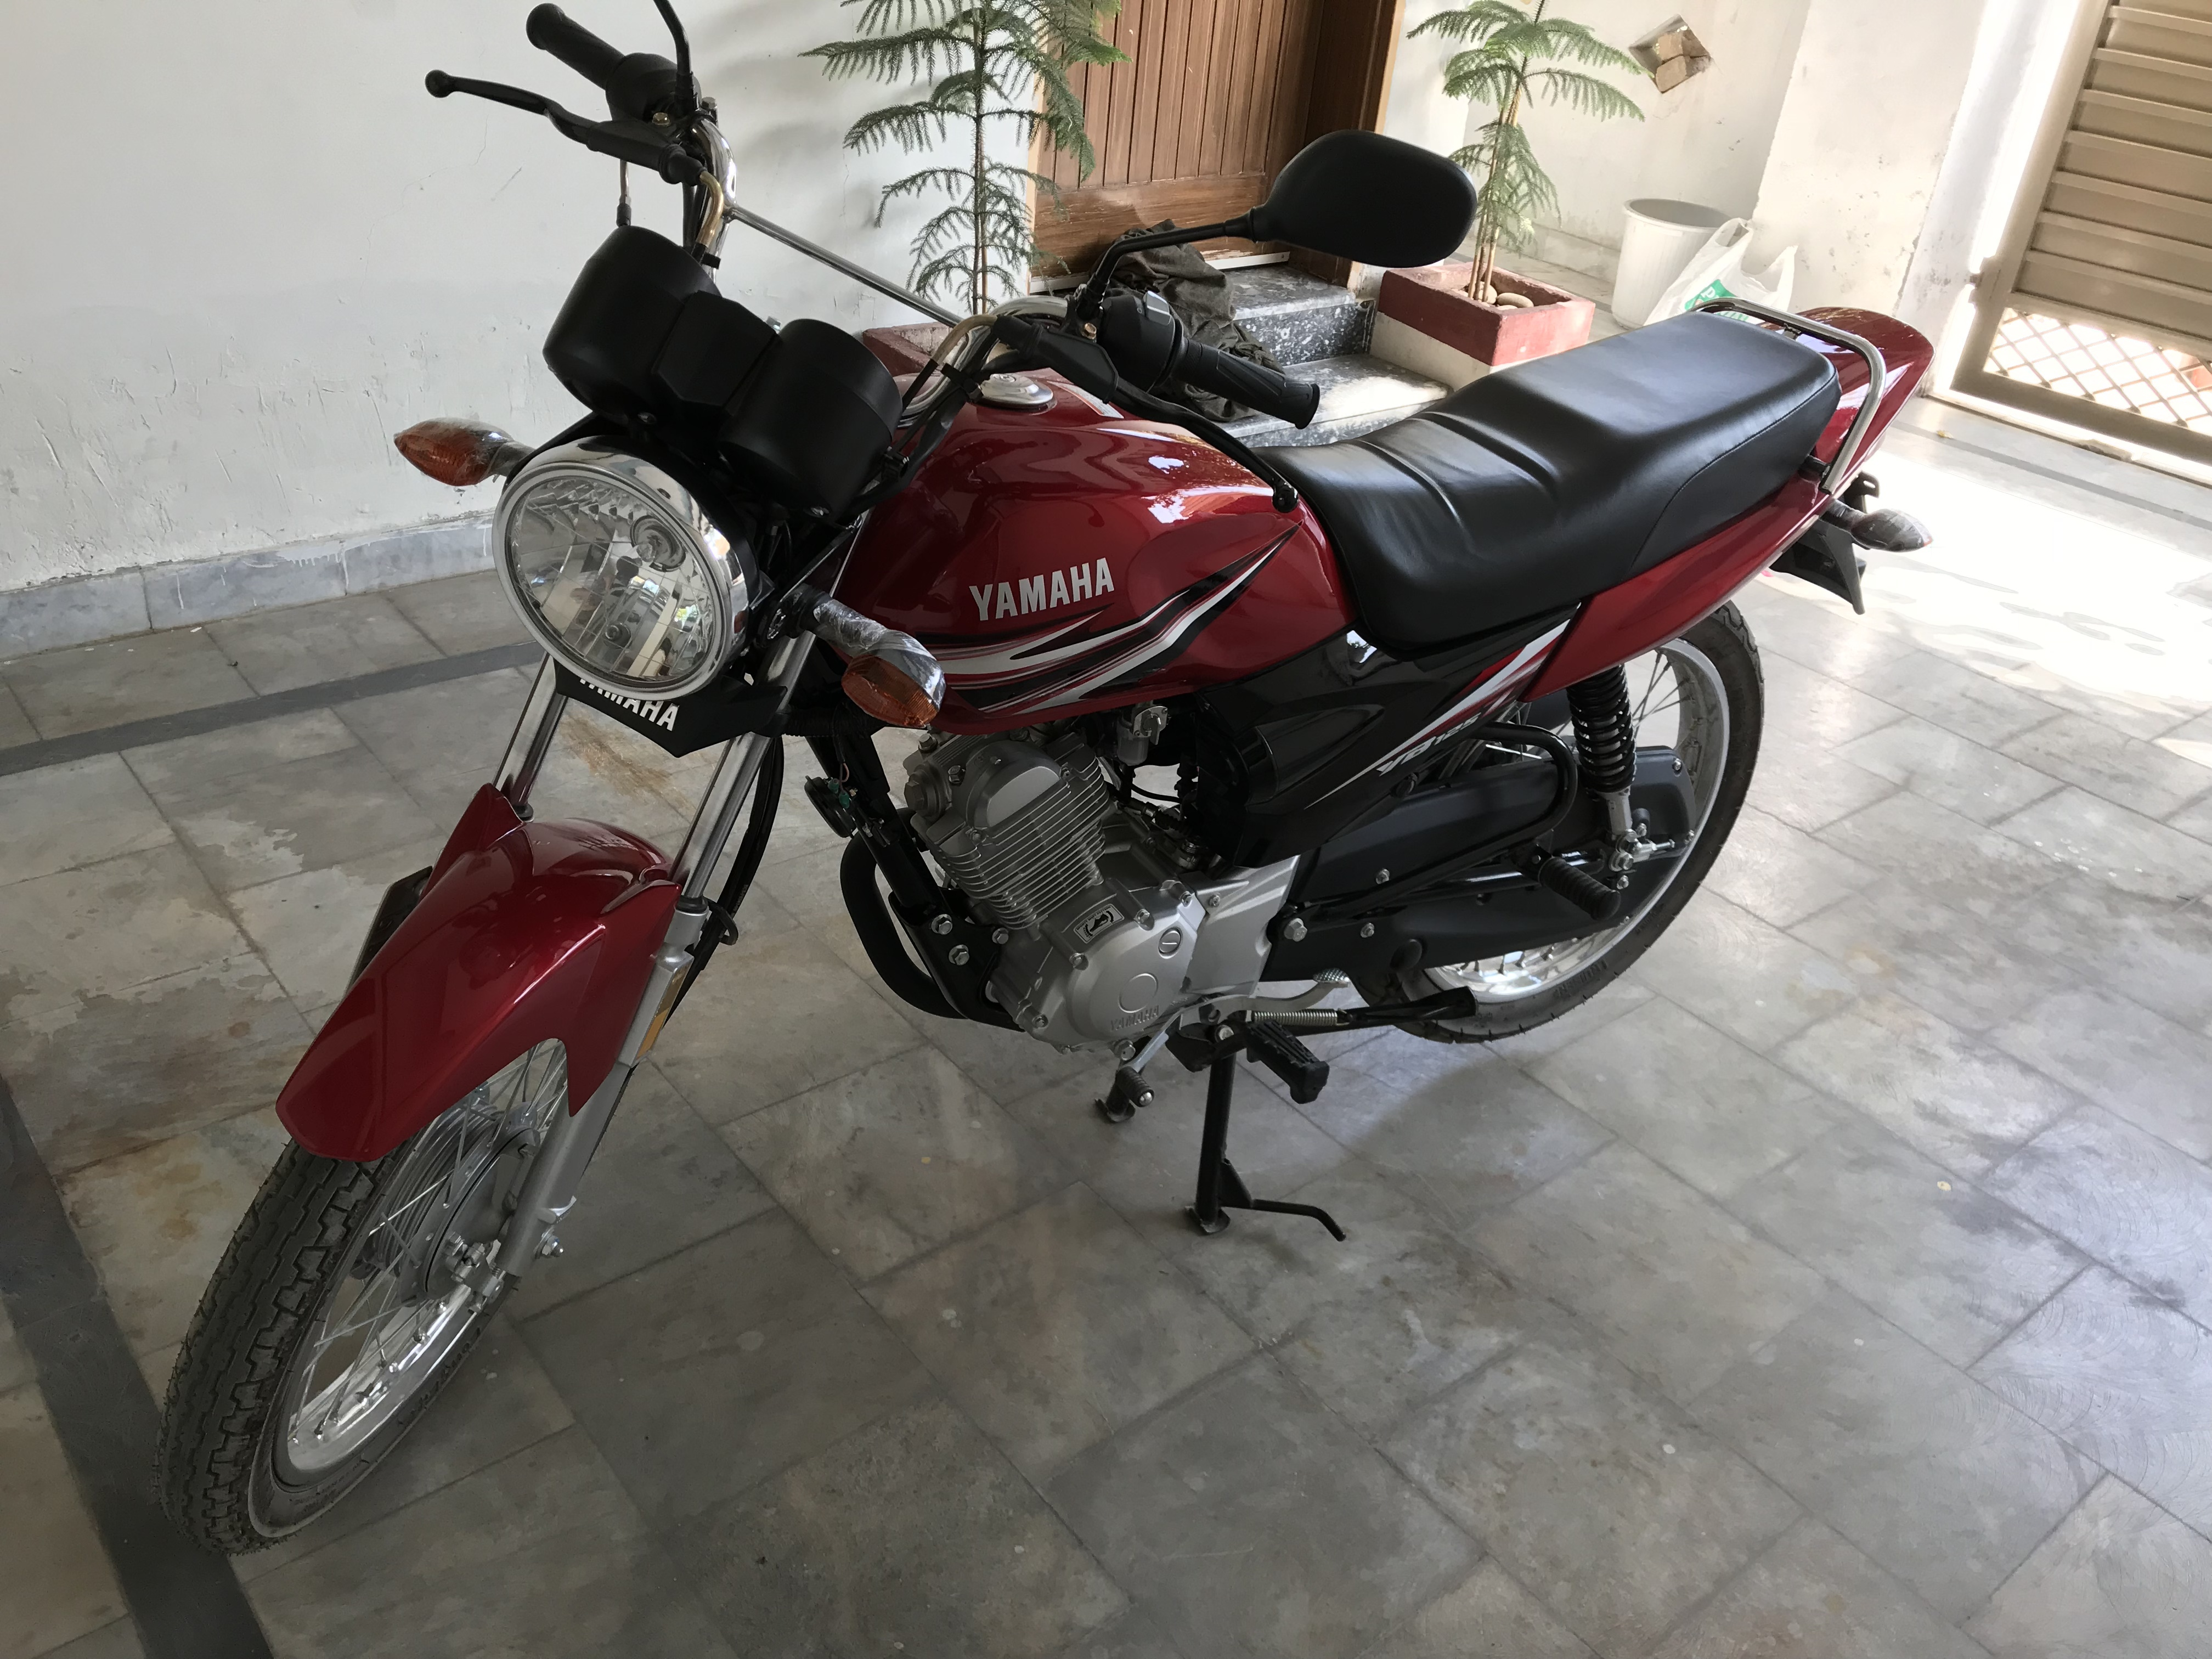 YAMAHA YB 125Z Owners Fan Club - Yamaha Bikes - PakWheels Forums